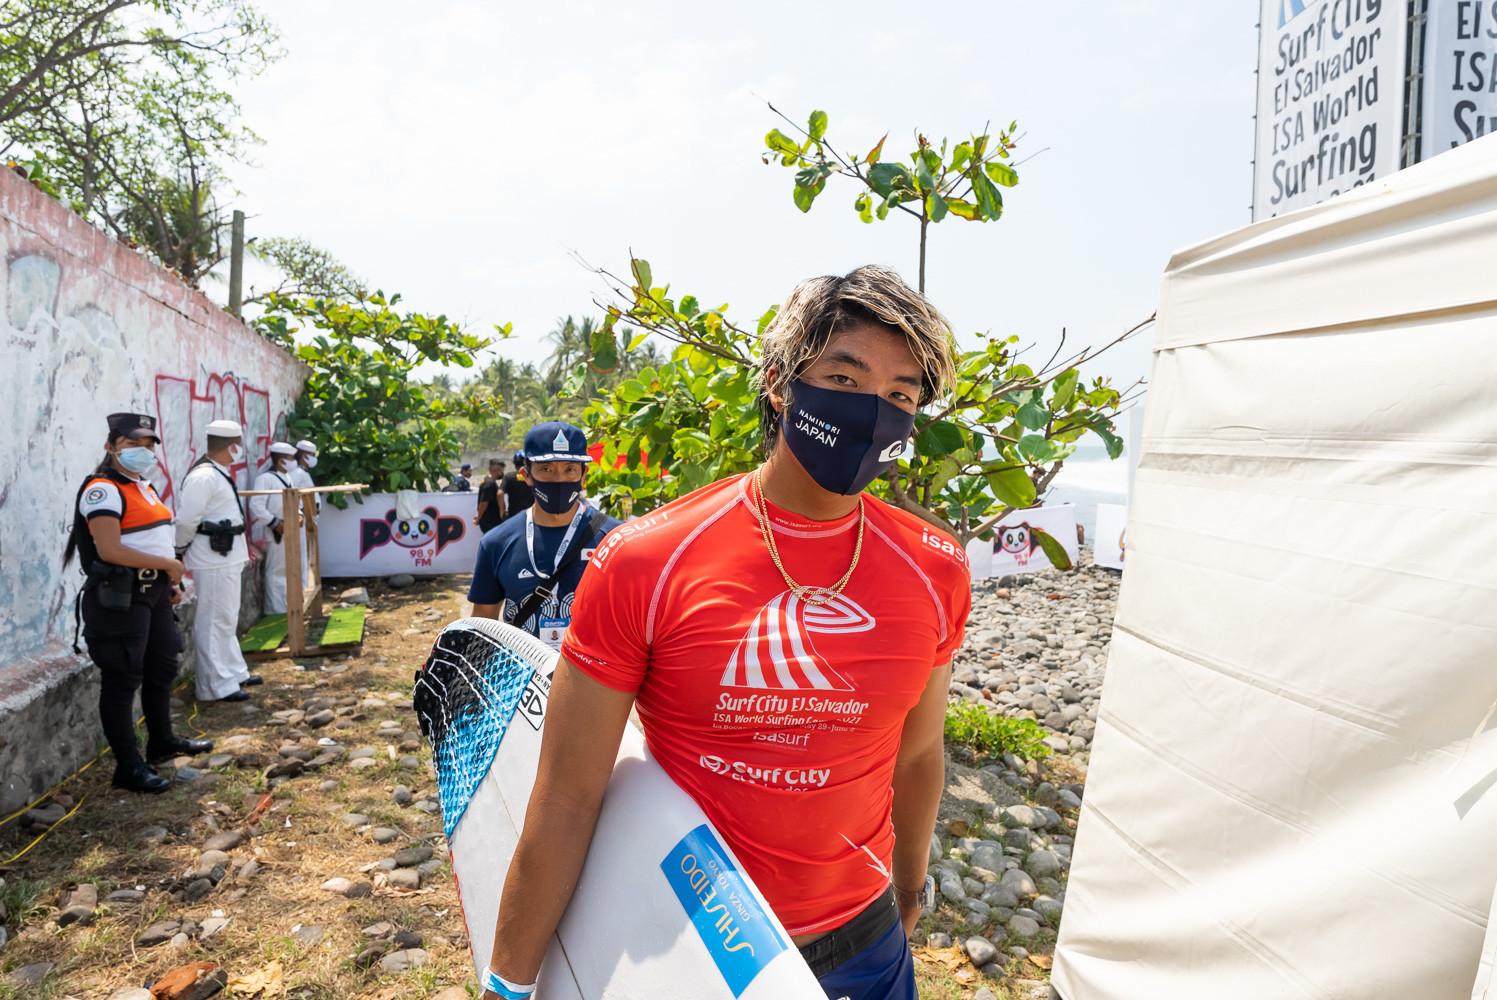 Kanoa Igarashi - who like Ferreira and Murakami has already qualified for the Olympics - was another Japanese winner today in El Salvador  ©ISA/Sean Evans